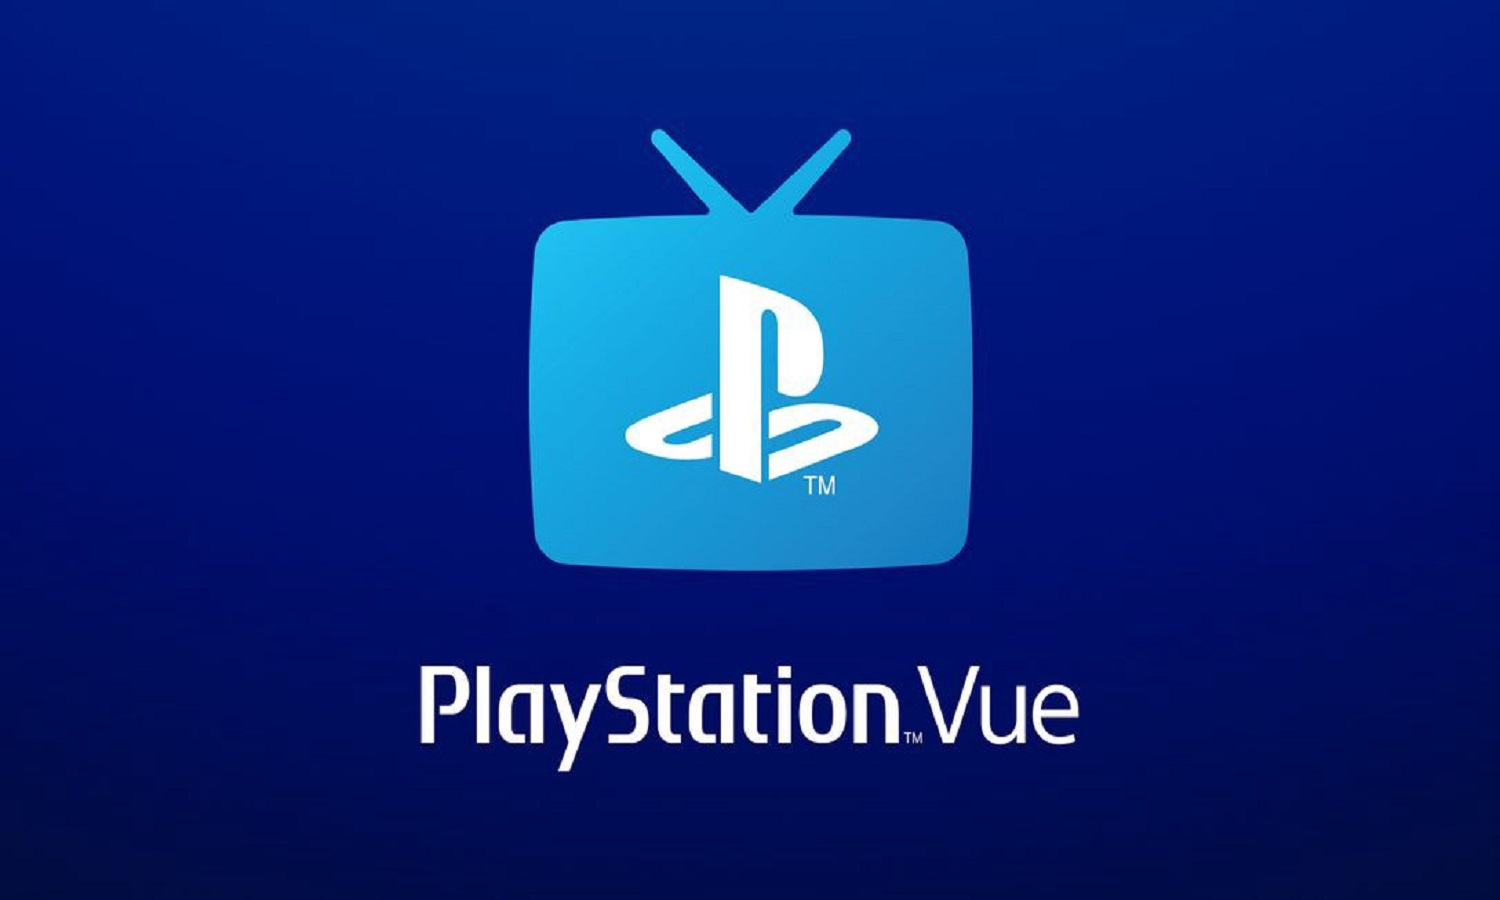 Learn How to Install and Activate PlayStation Vue on Roku